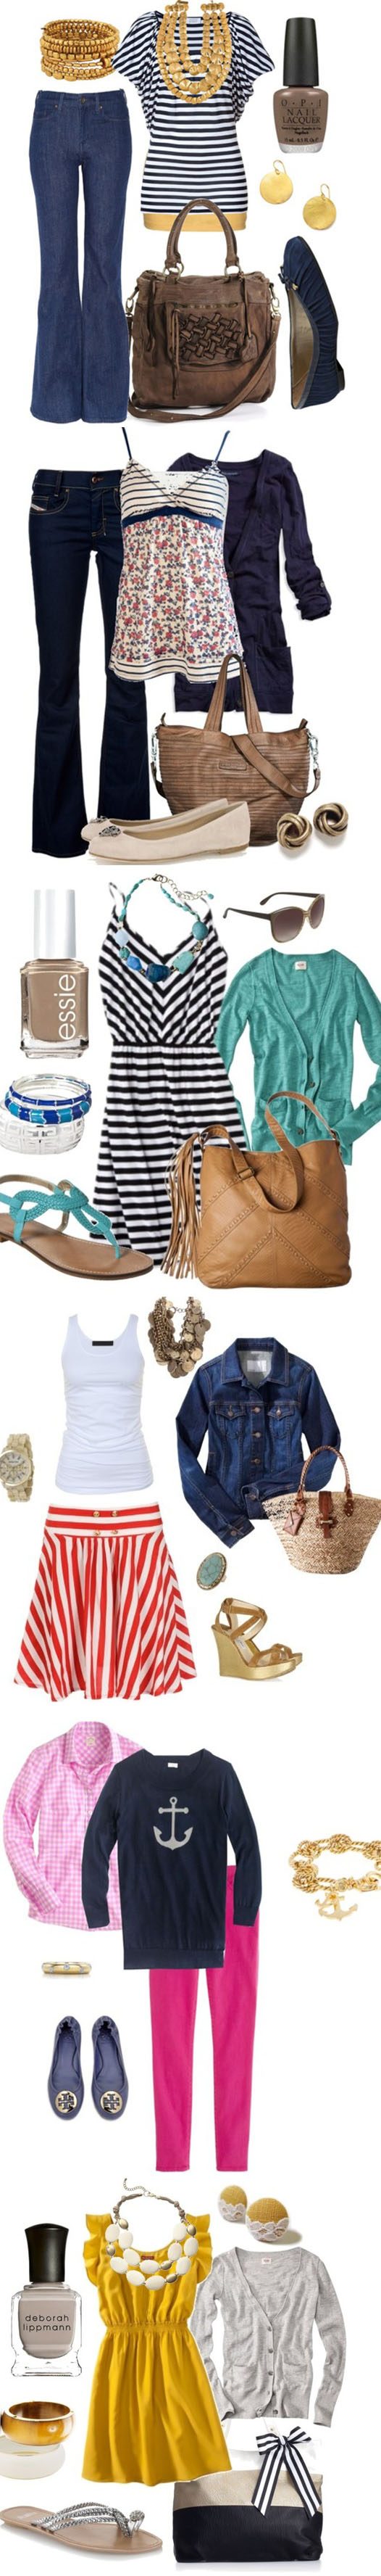 Nautical Spring Fashion 2013